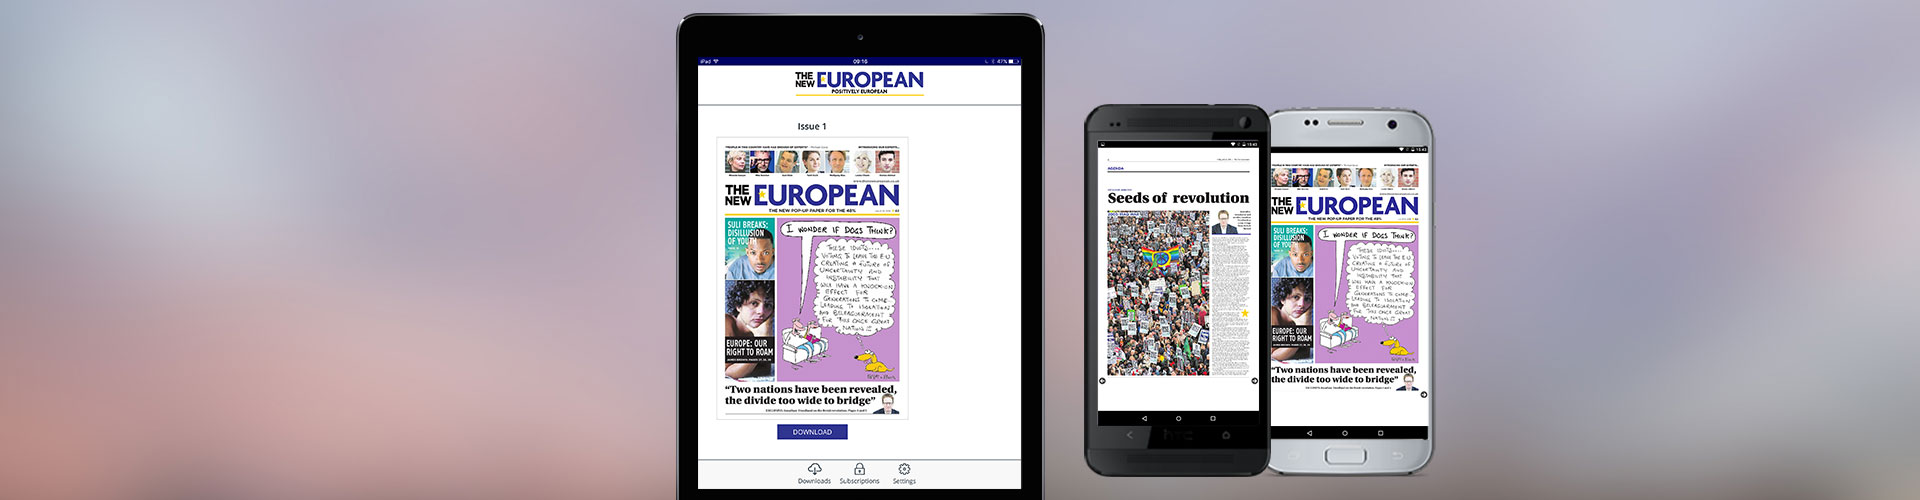 Brand New App for 'The New European' Launched by PageSuite